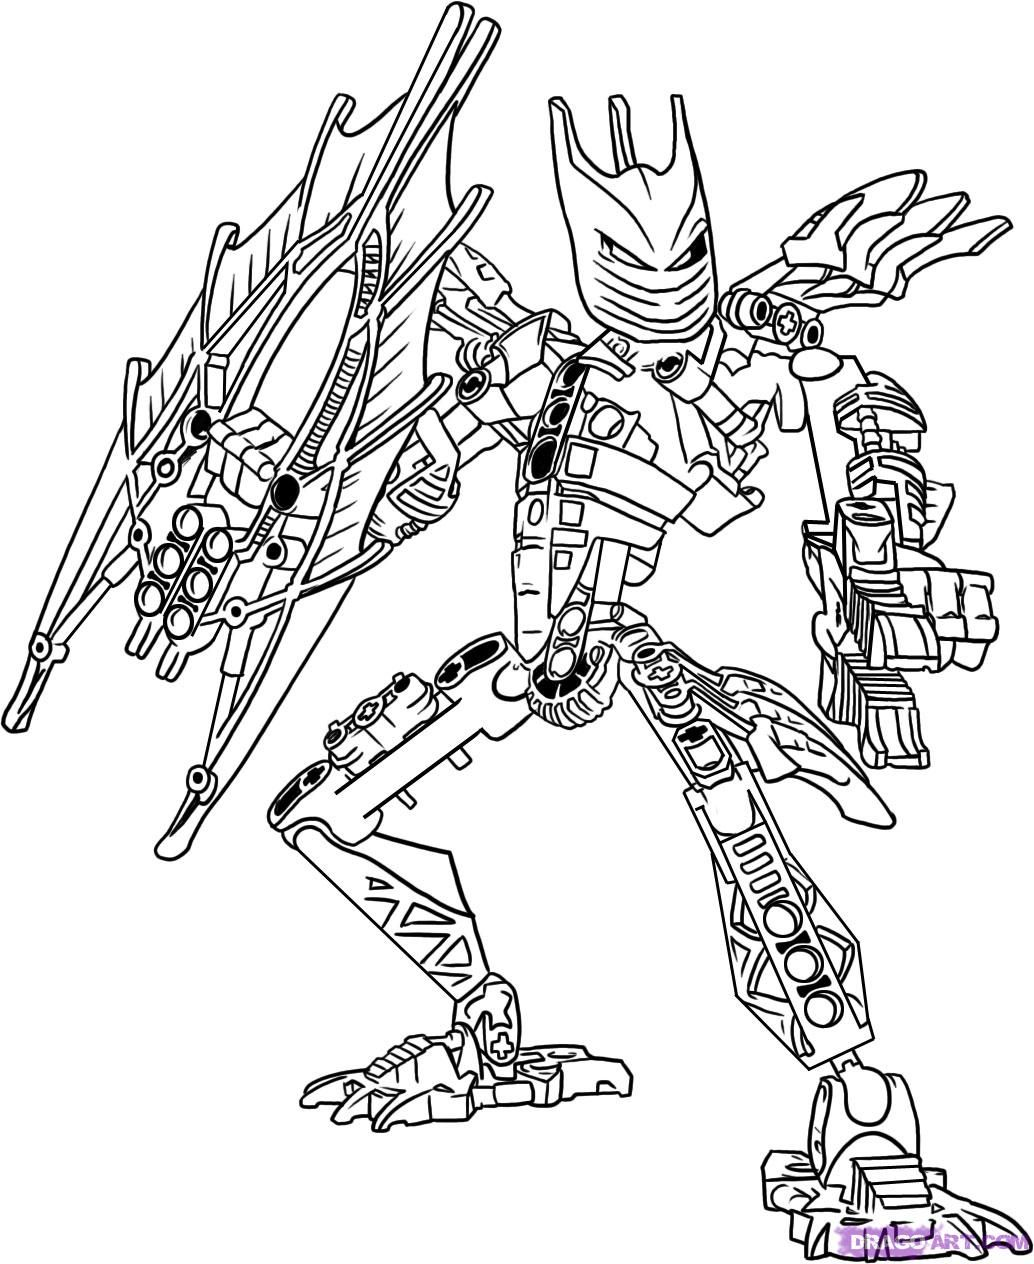 Bionicle Coloring Page